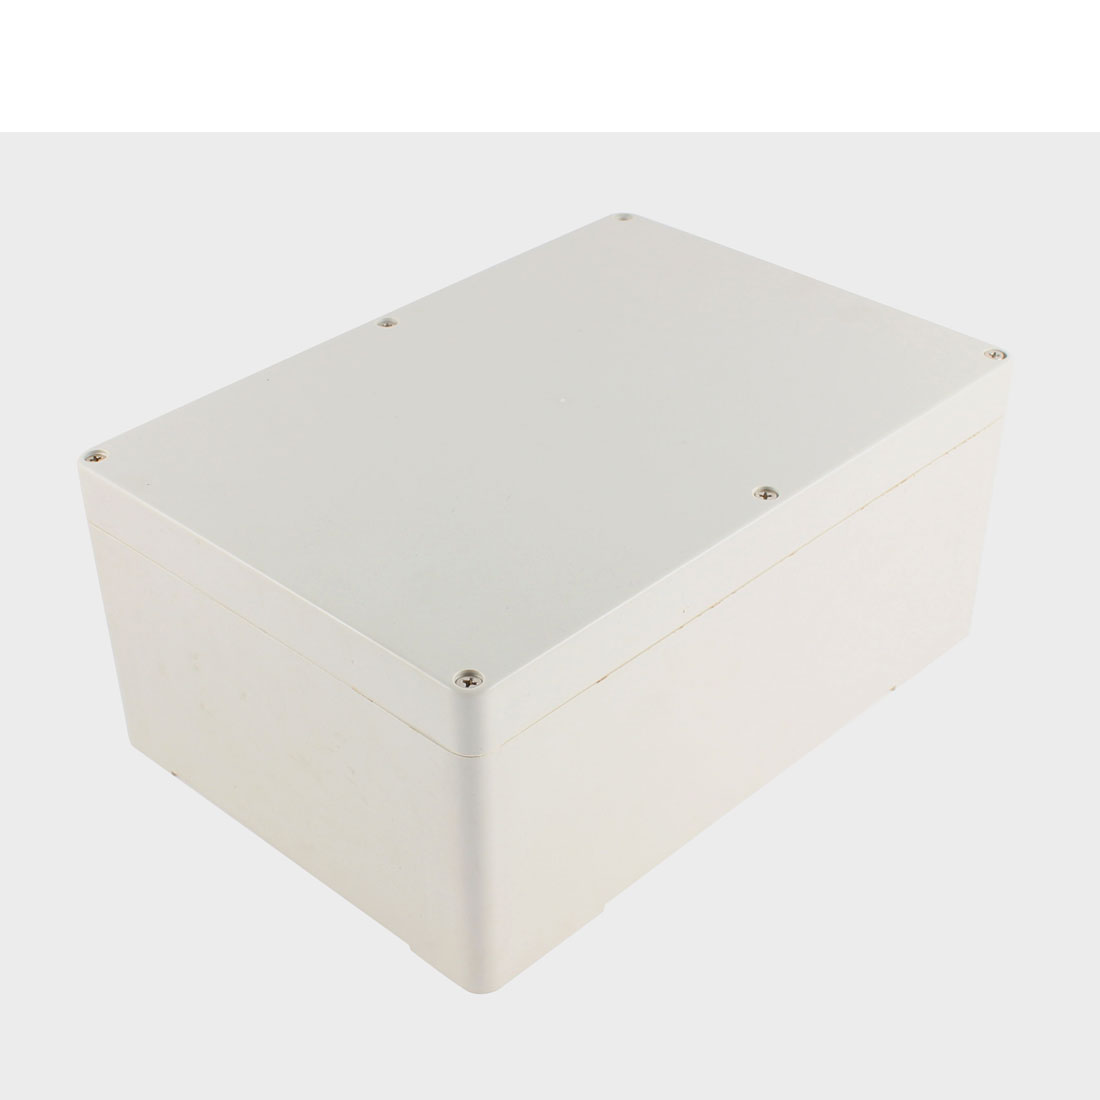 Beige Plastic Electronic Project Junction Box 262 x 182 x 112mm